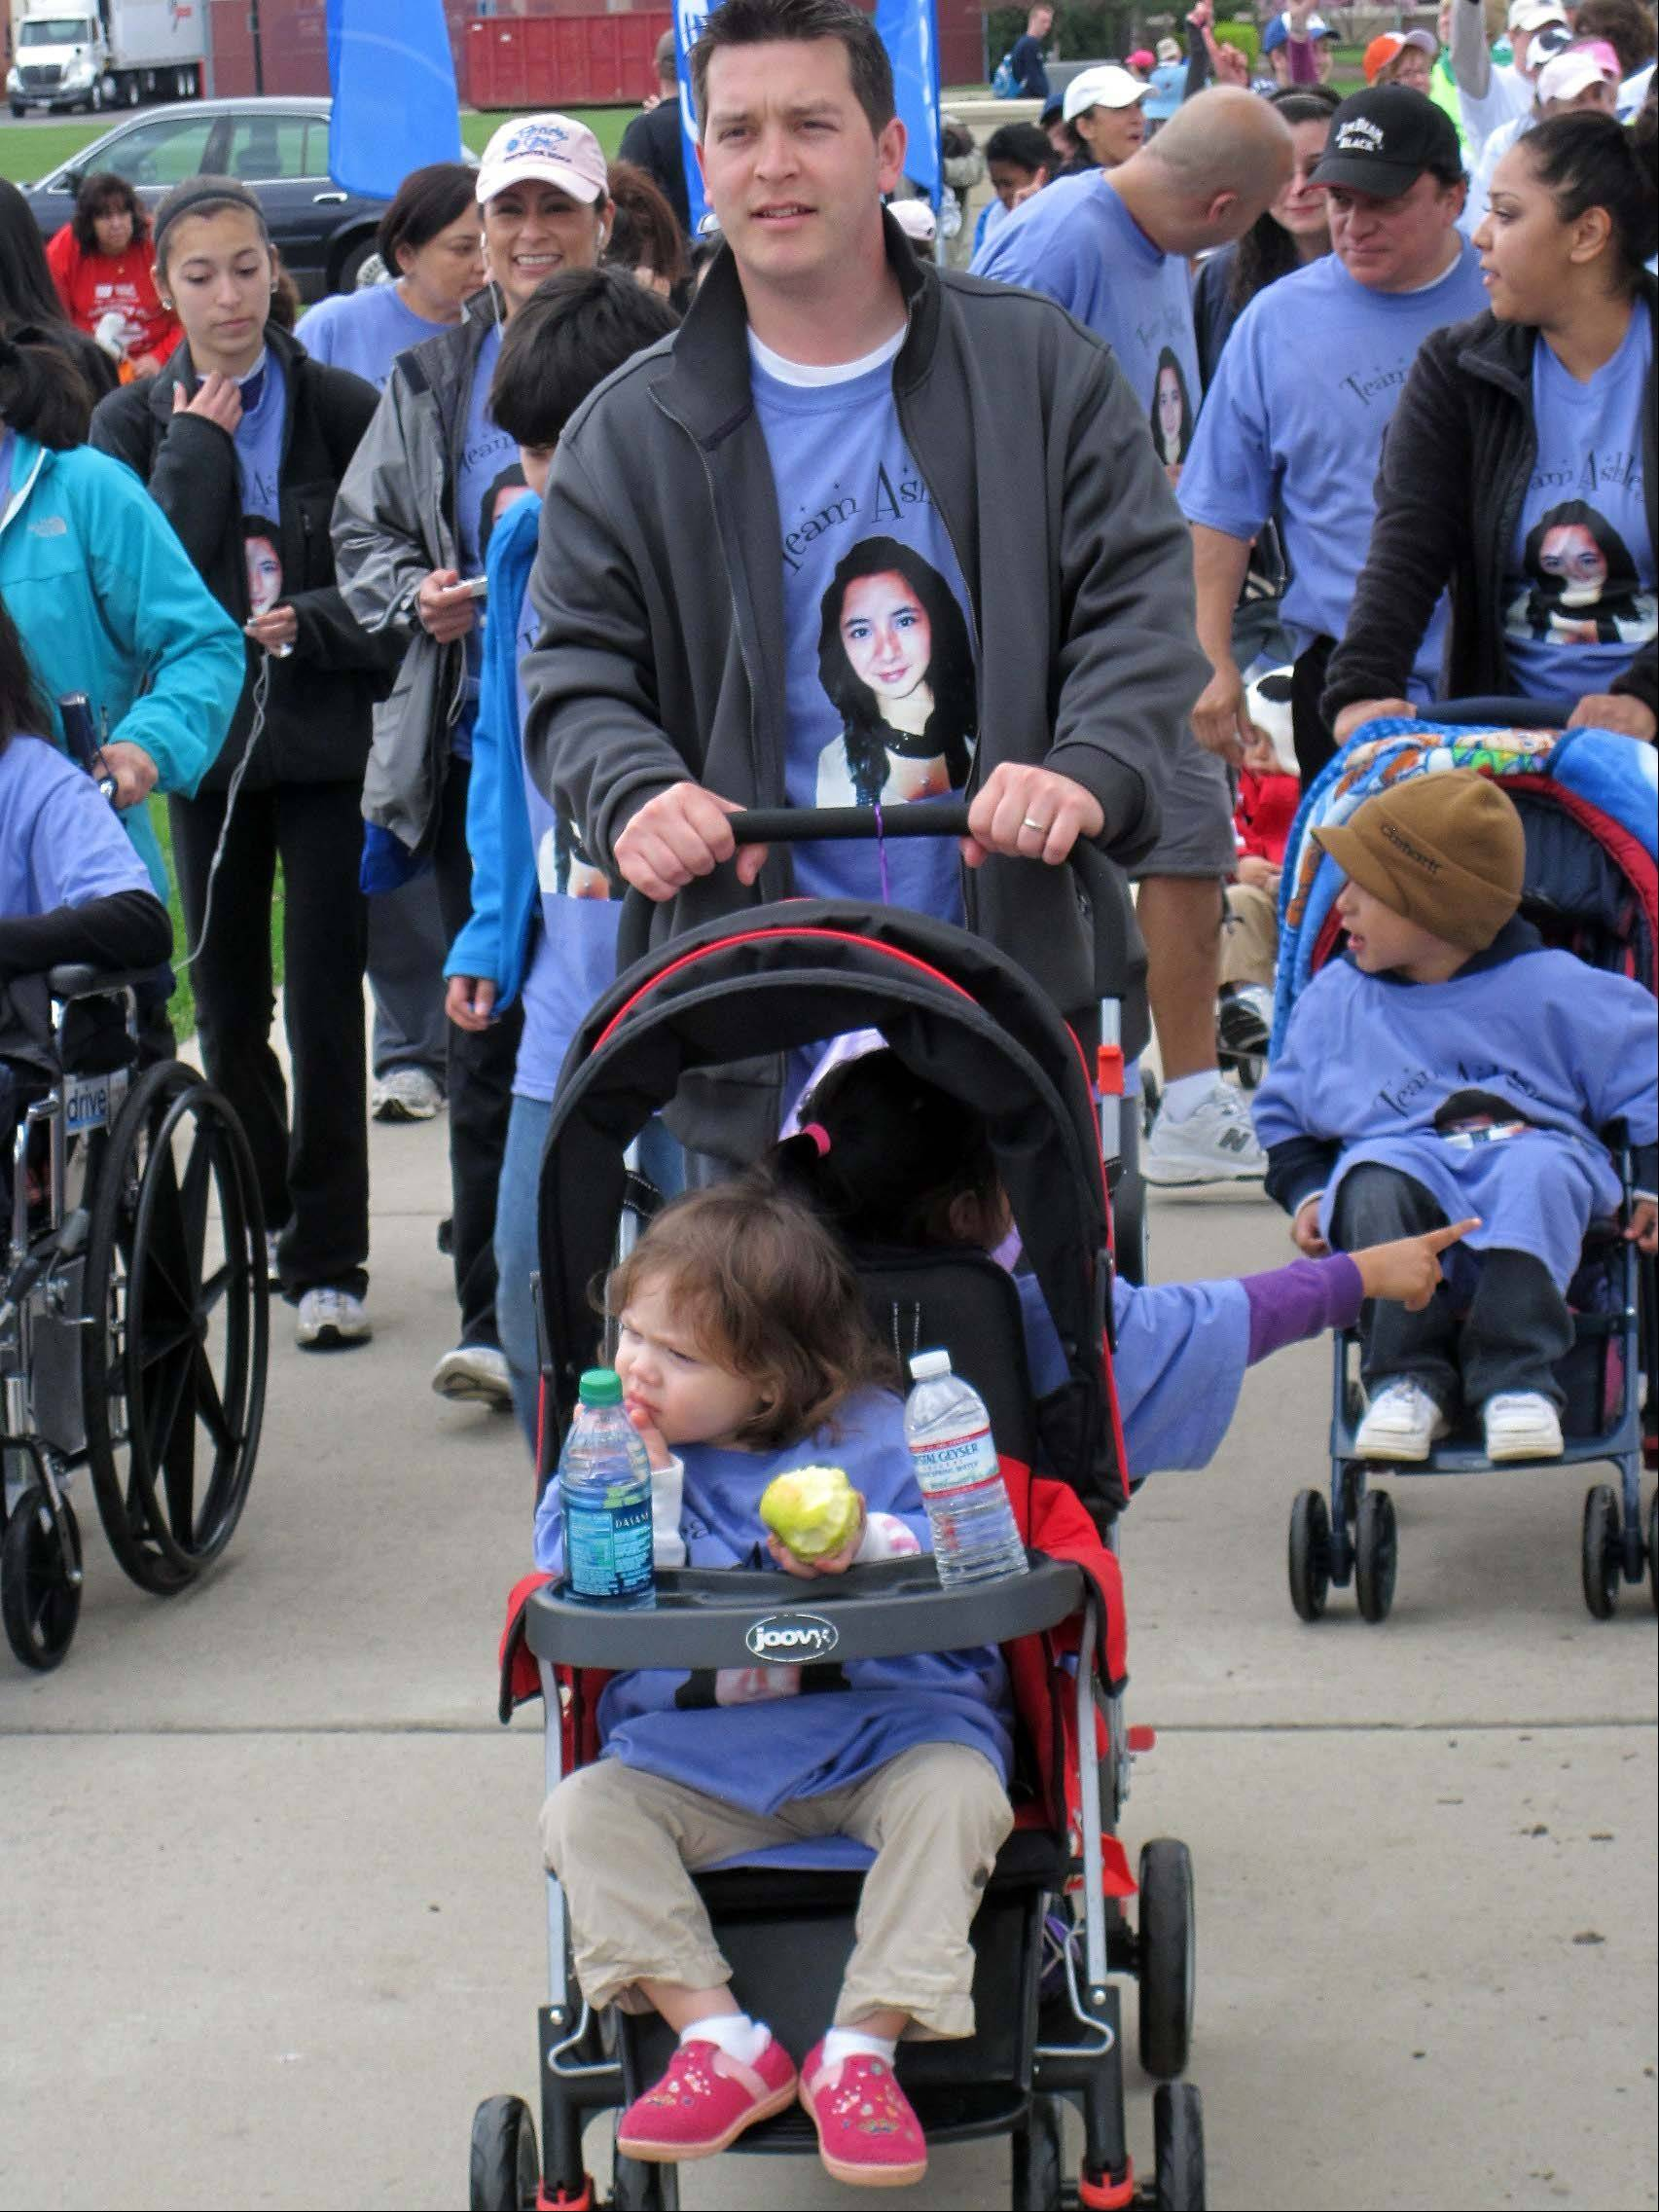 Ryan Quimby of Algonquin walked last year at the American Cancer Society's Walk & Roll in Elgin to support Ashley Garza, 13, pictured on his shirt. Garza died Tuesday from cancer.